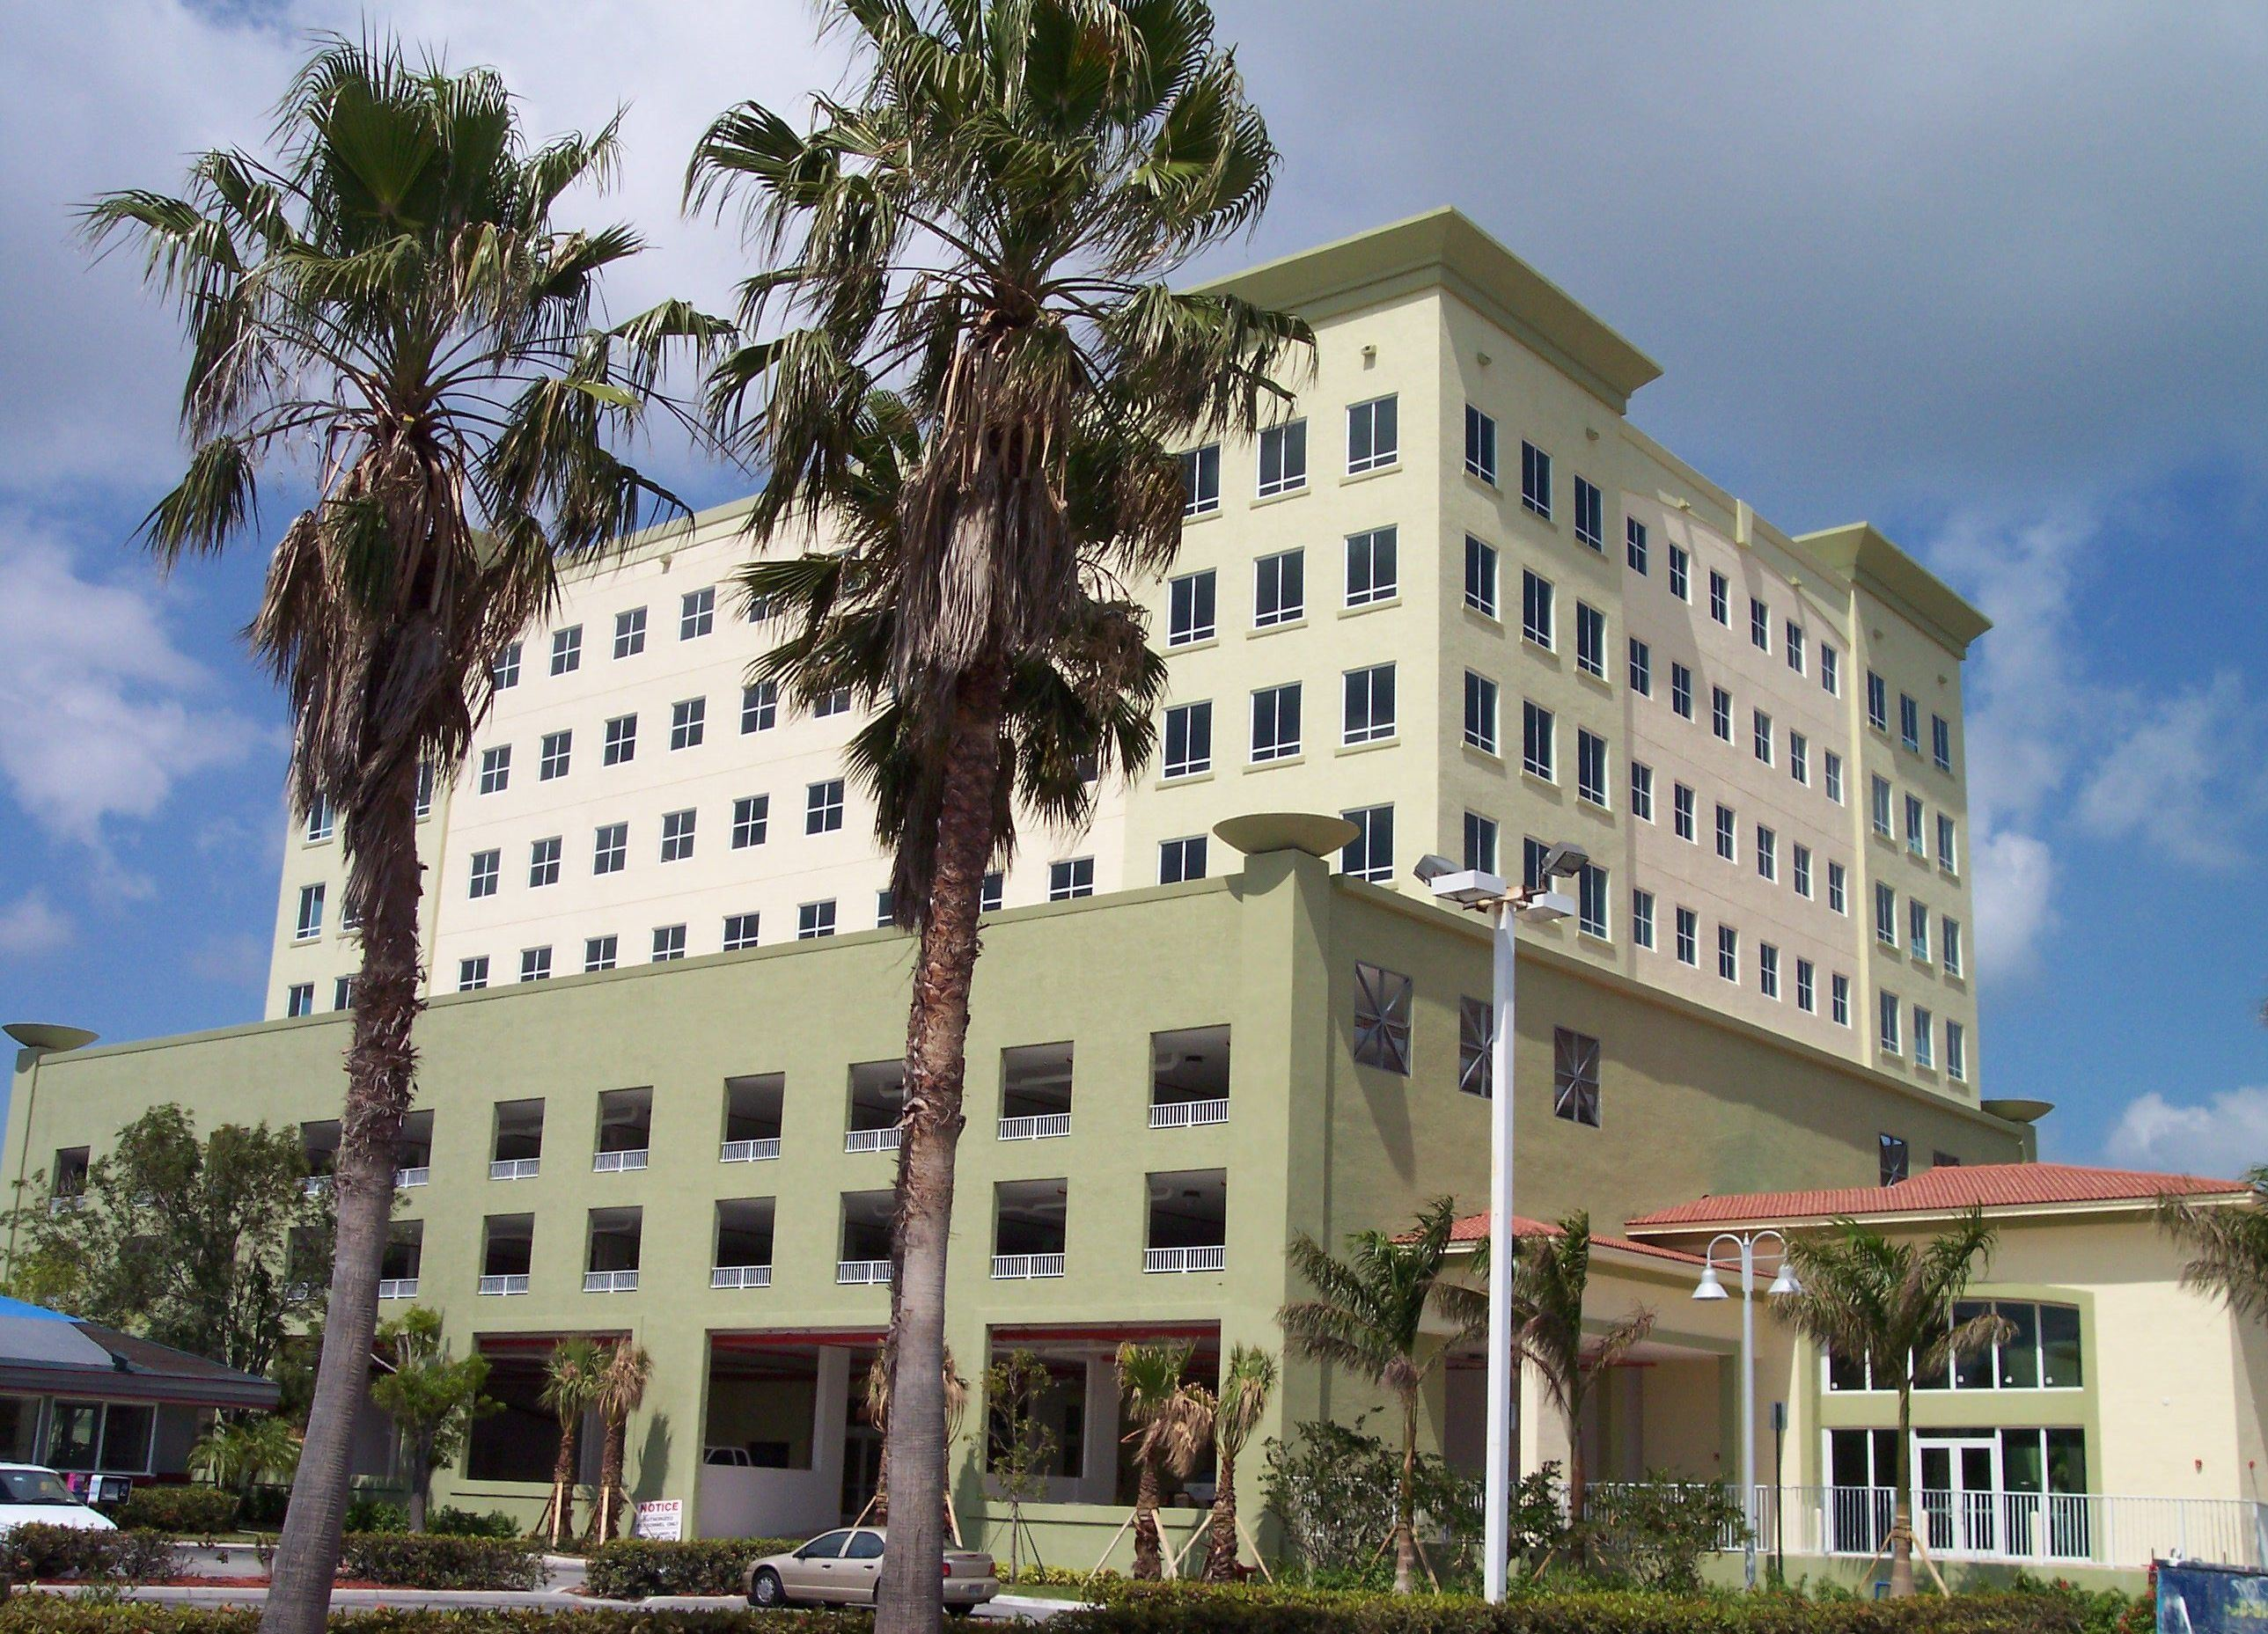 Office 163, North Miami Beach's Newest Office Building